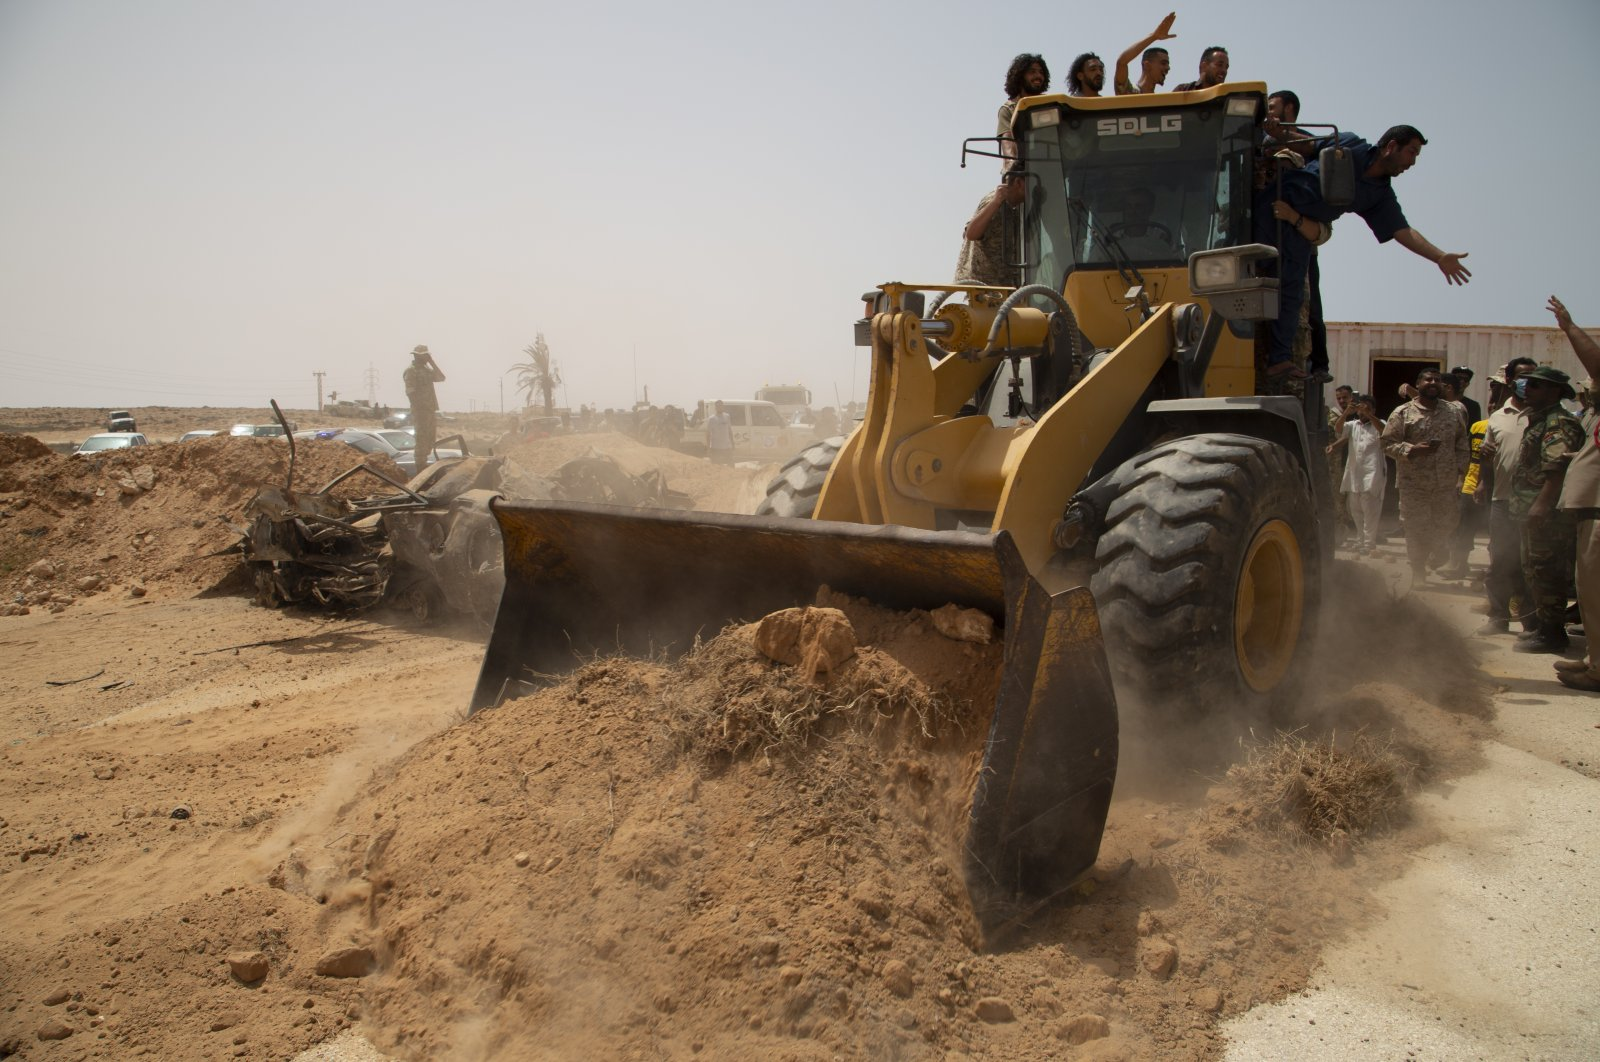 A bulldozer pushes earth during a ceremony to reopen the road between the cities of Misrata and Sirte Sunday, June 20, 2021. (AP Photo)